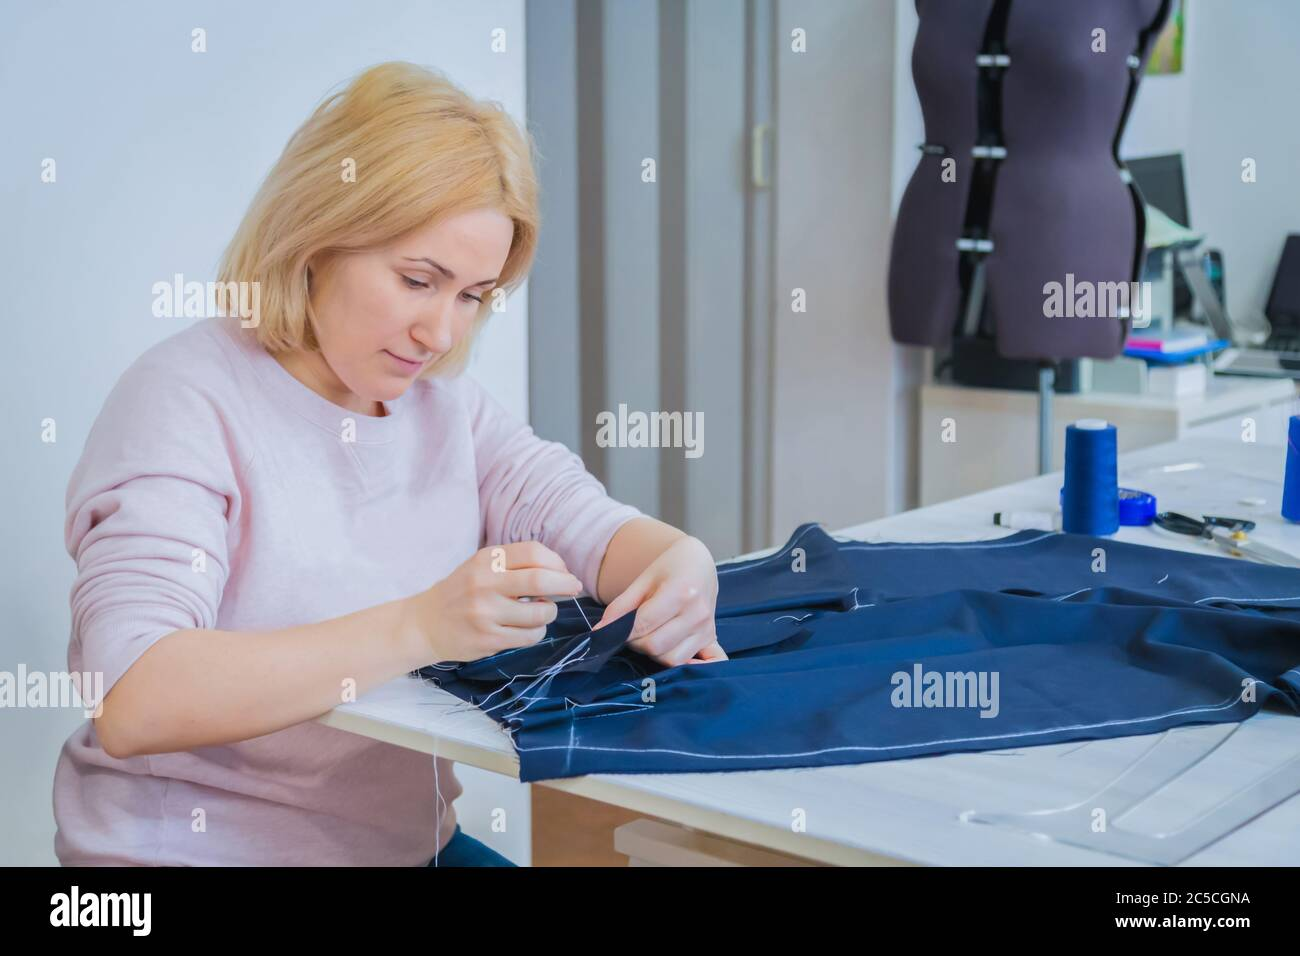 Professional Tailor Fashion Designer Sitting And Working At Sewing Studio Preparation Process Fashion And Tailoring Concept Stock Photo Alamy